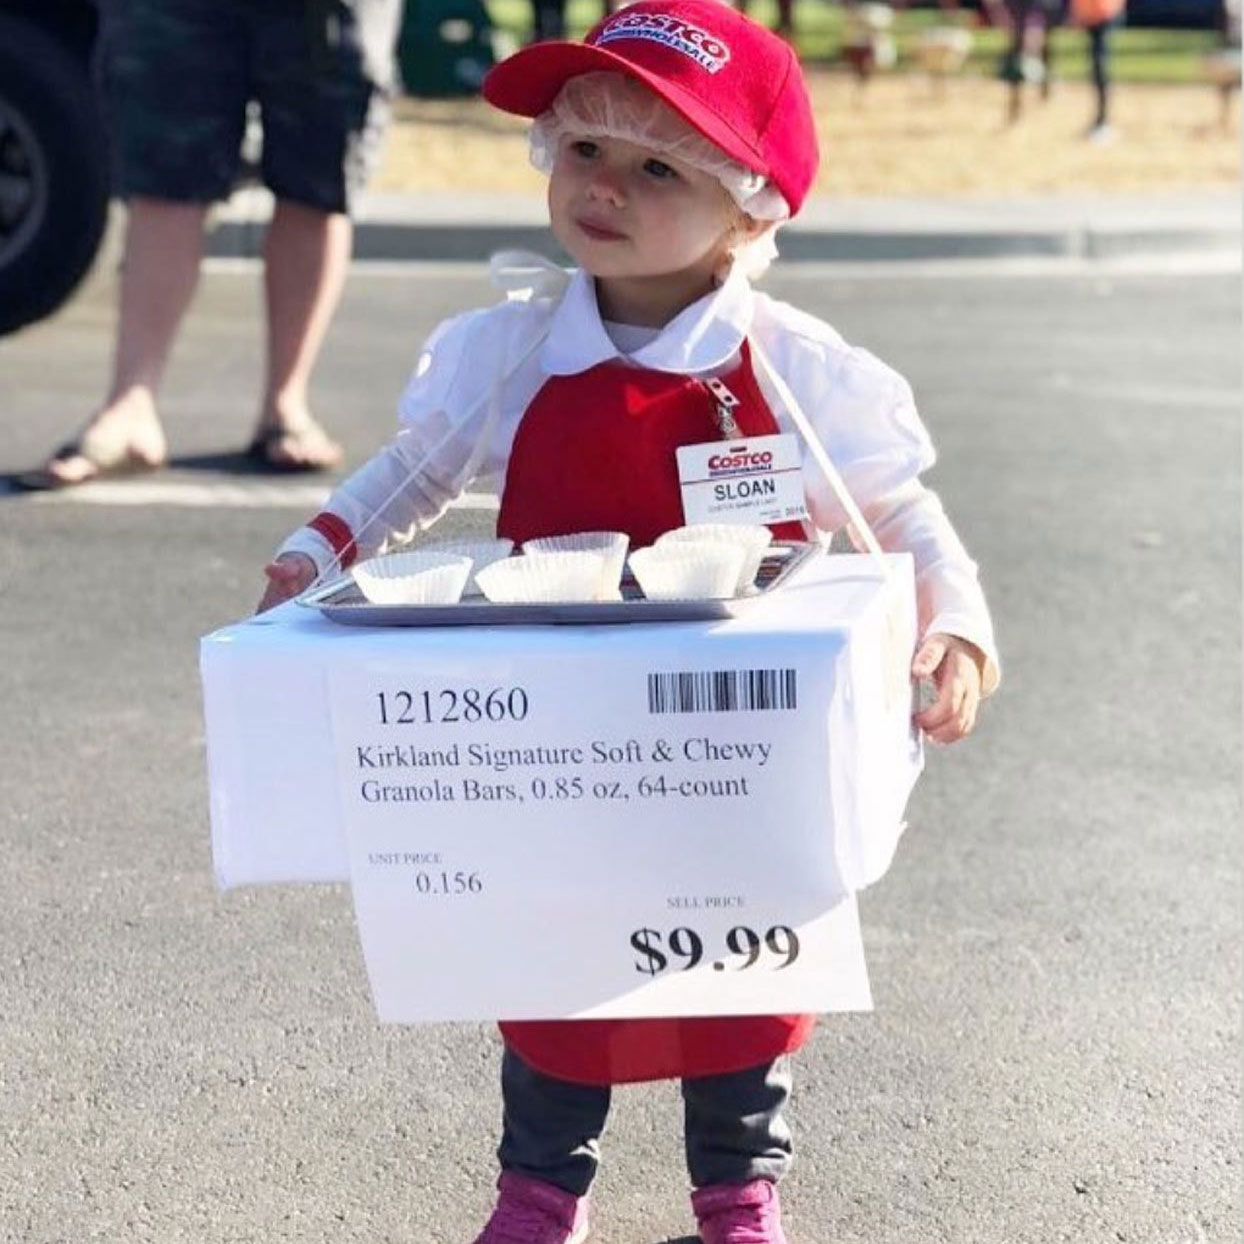 child wearing a costco sample person costume